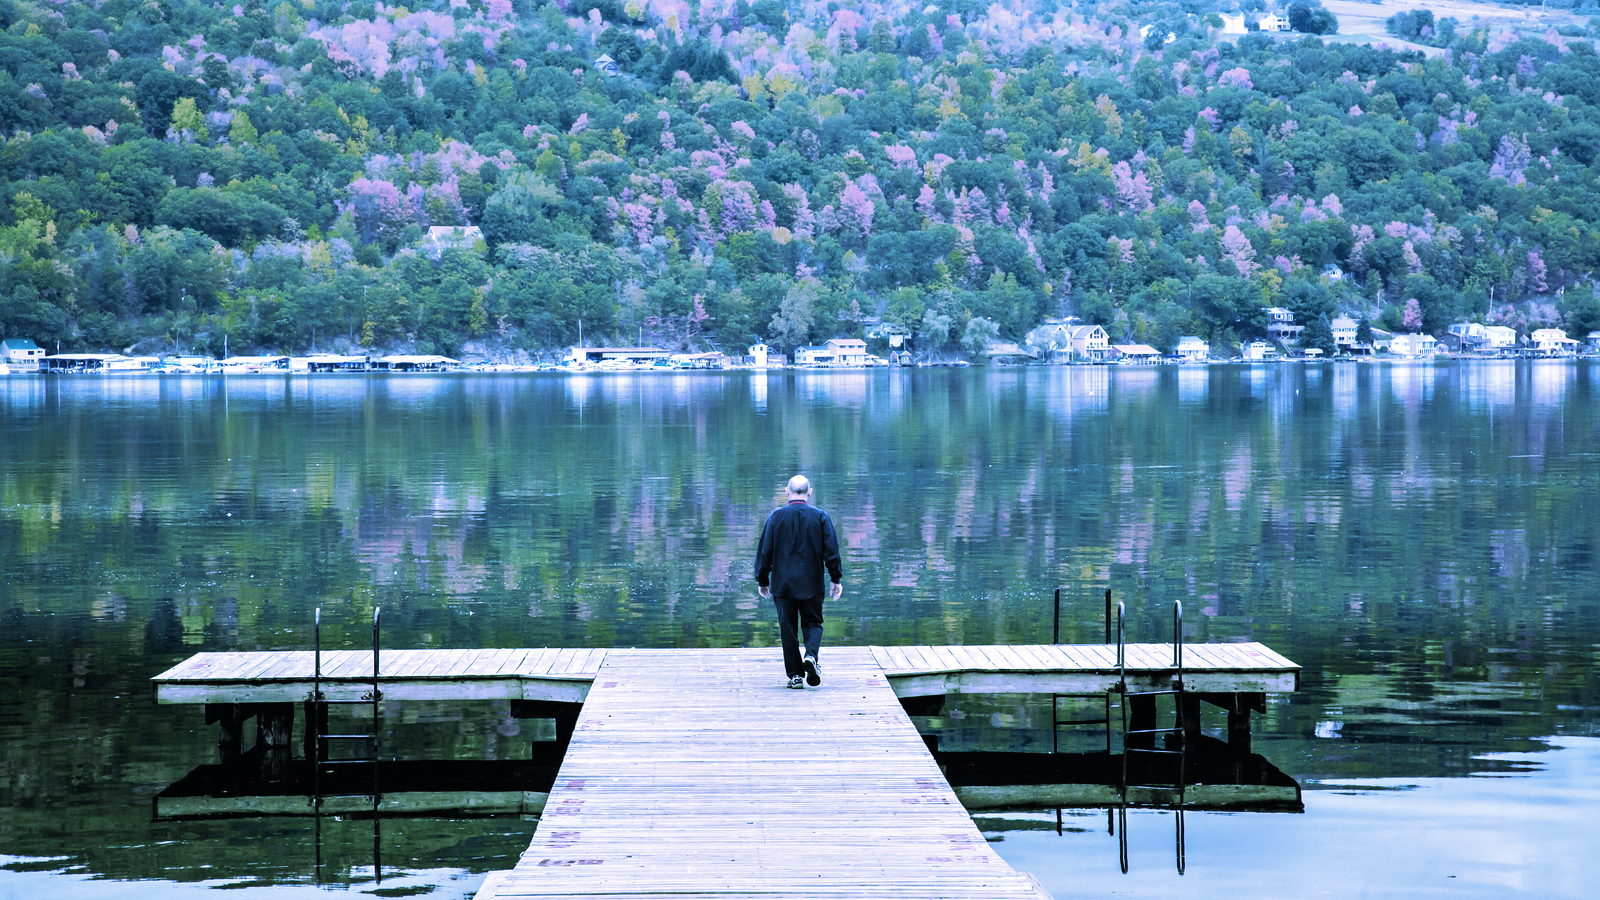 Bitcoin Mining Is Turning New York Lake Into a 'Hot Tub', Say Locals